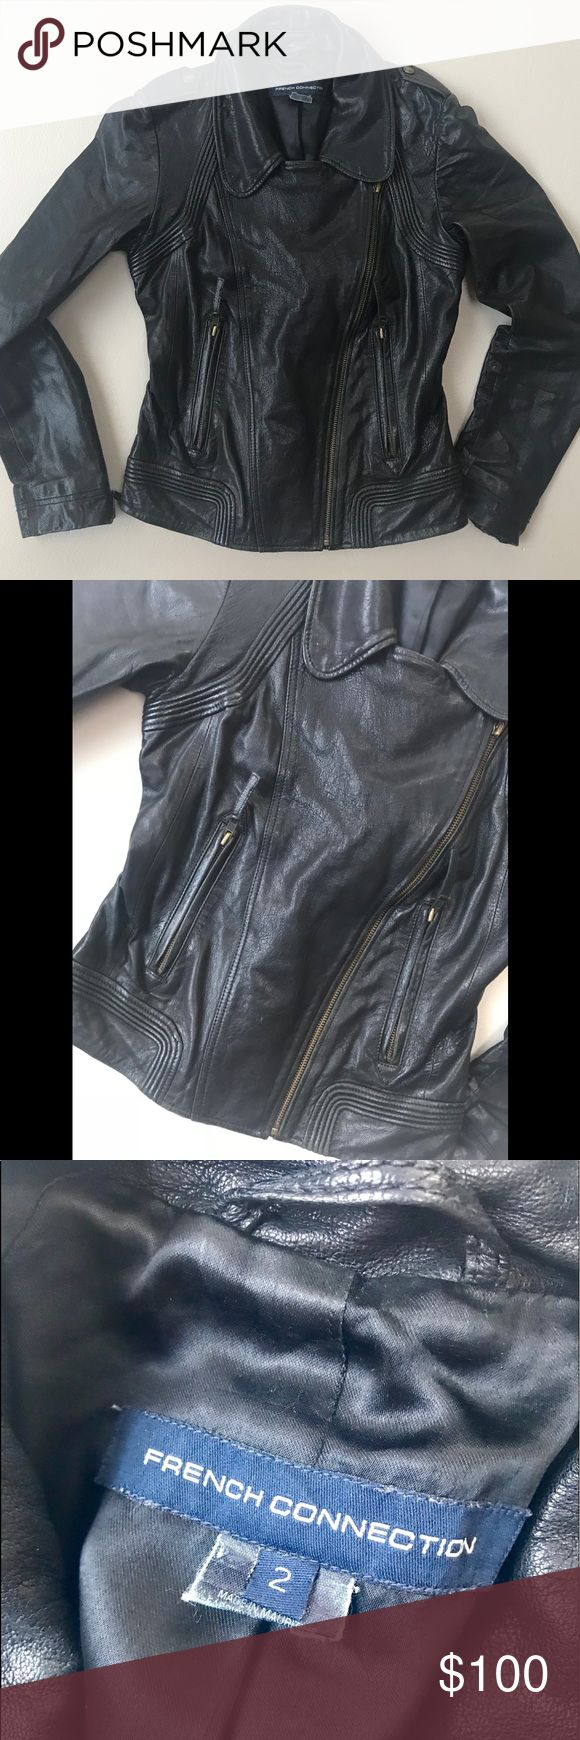 French Connection Leather Jacket Leather jacket light wear on left sleeve French Connection Jackets & Coats